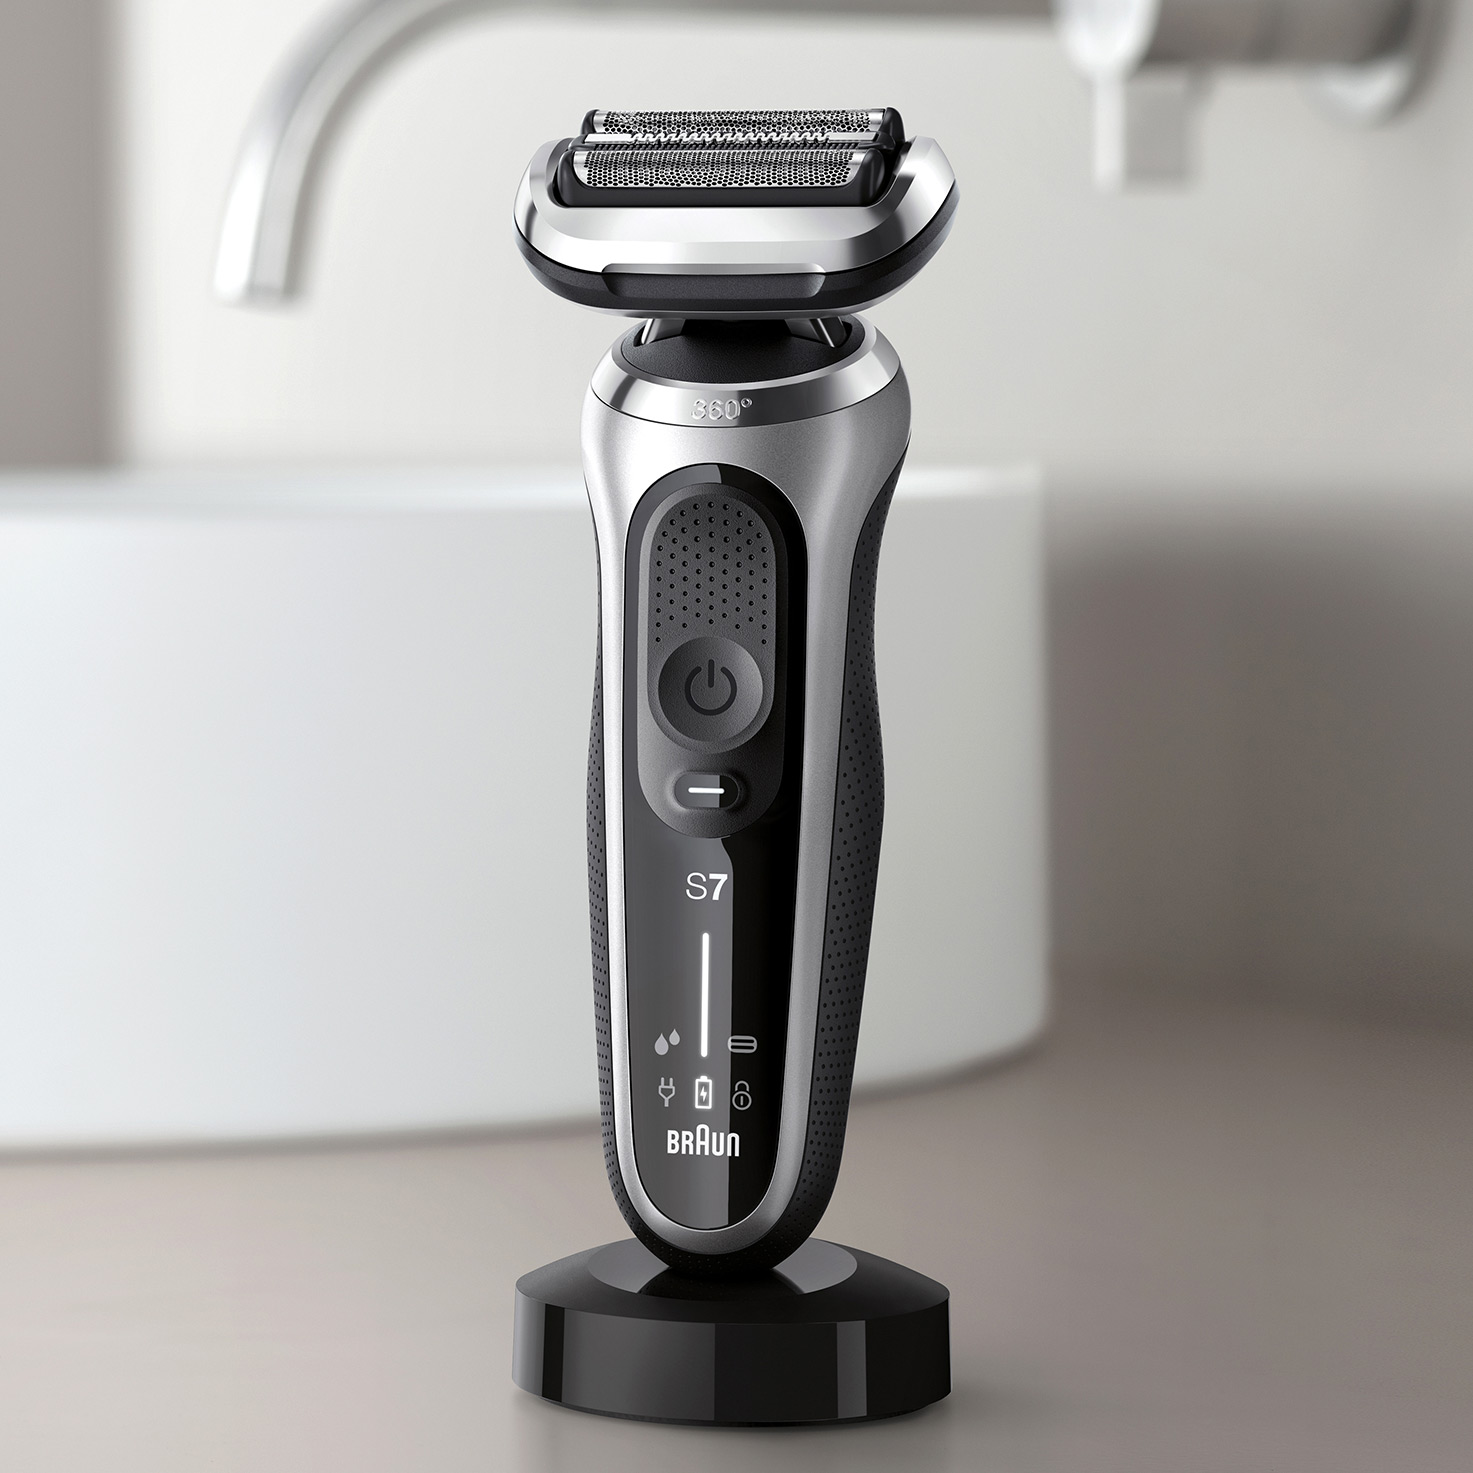 Charging Stand for Braun Series 5, 6 and 7 electric shaver (New generation)